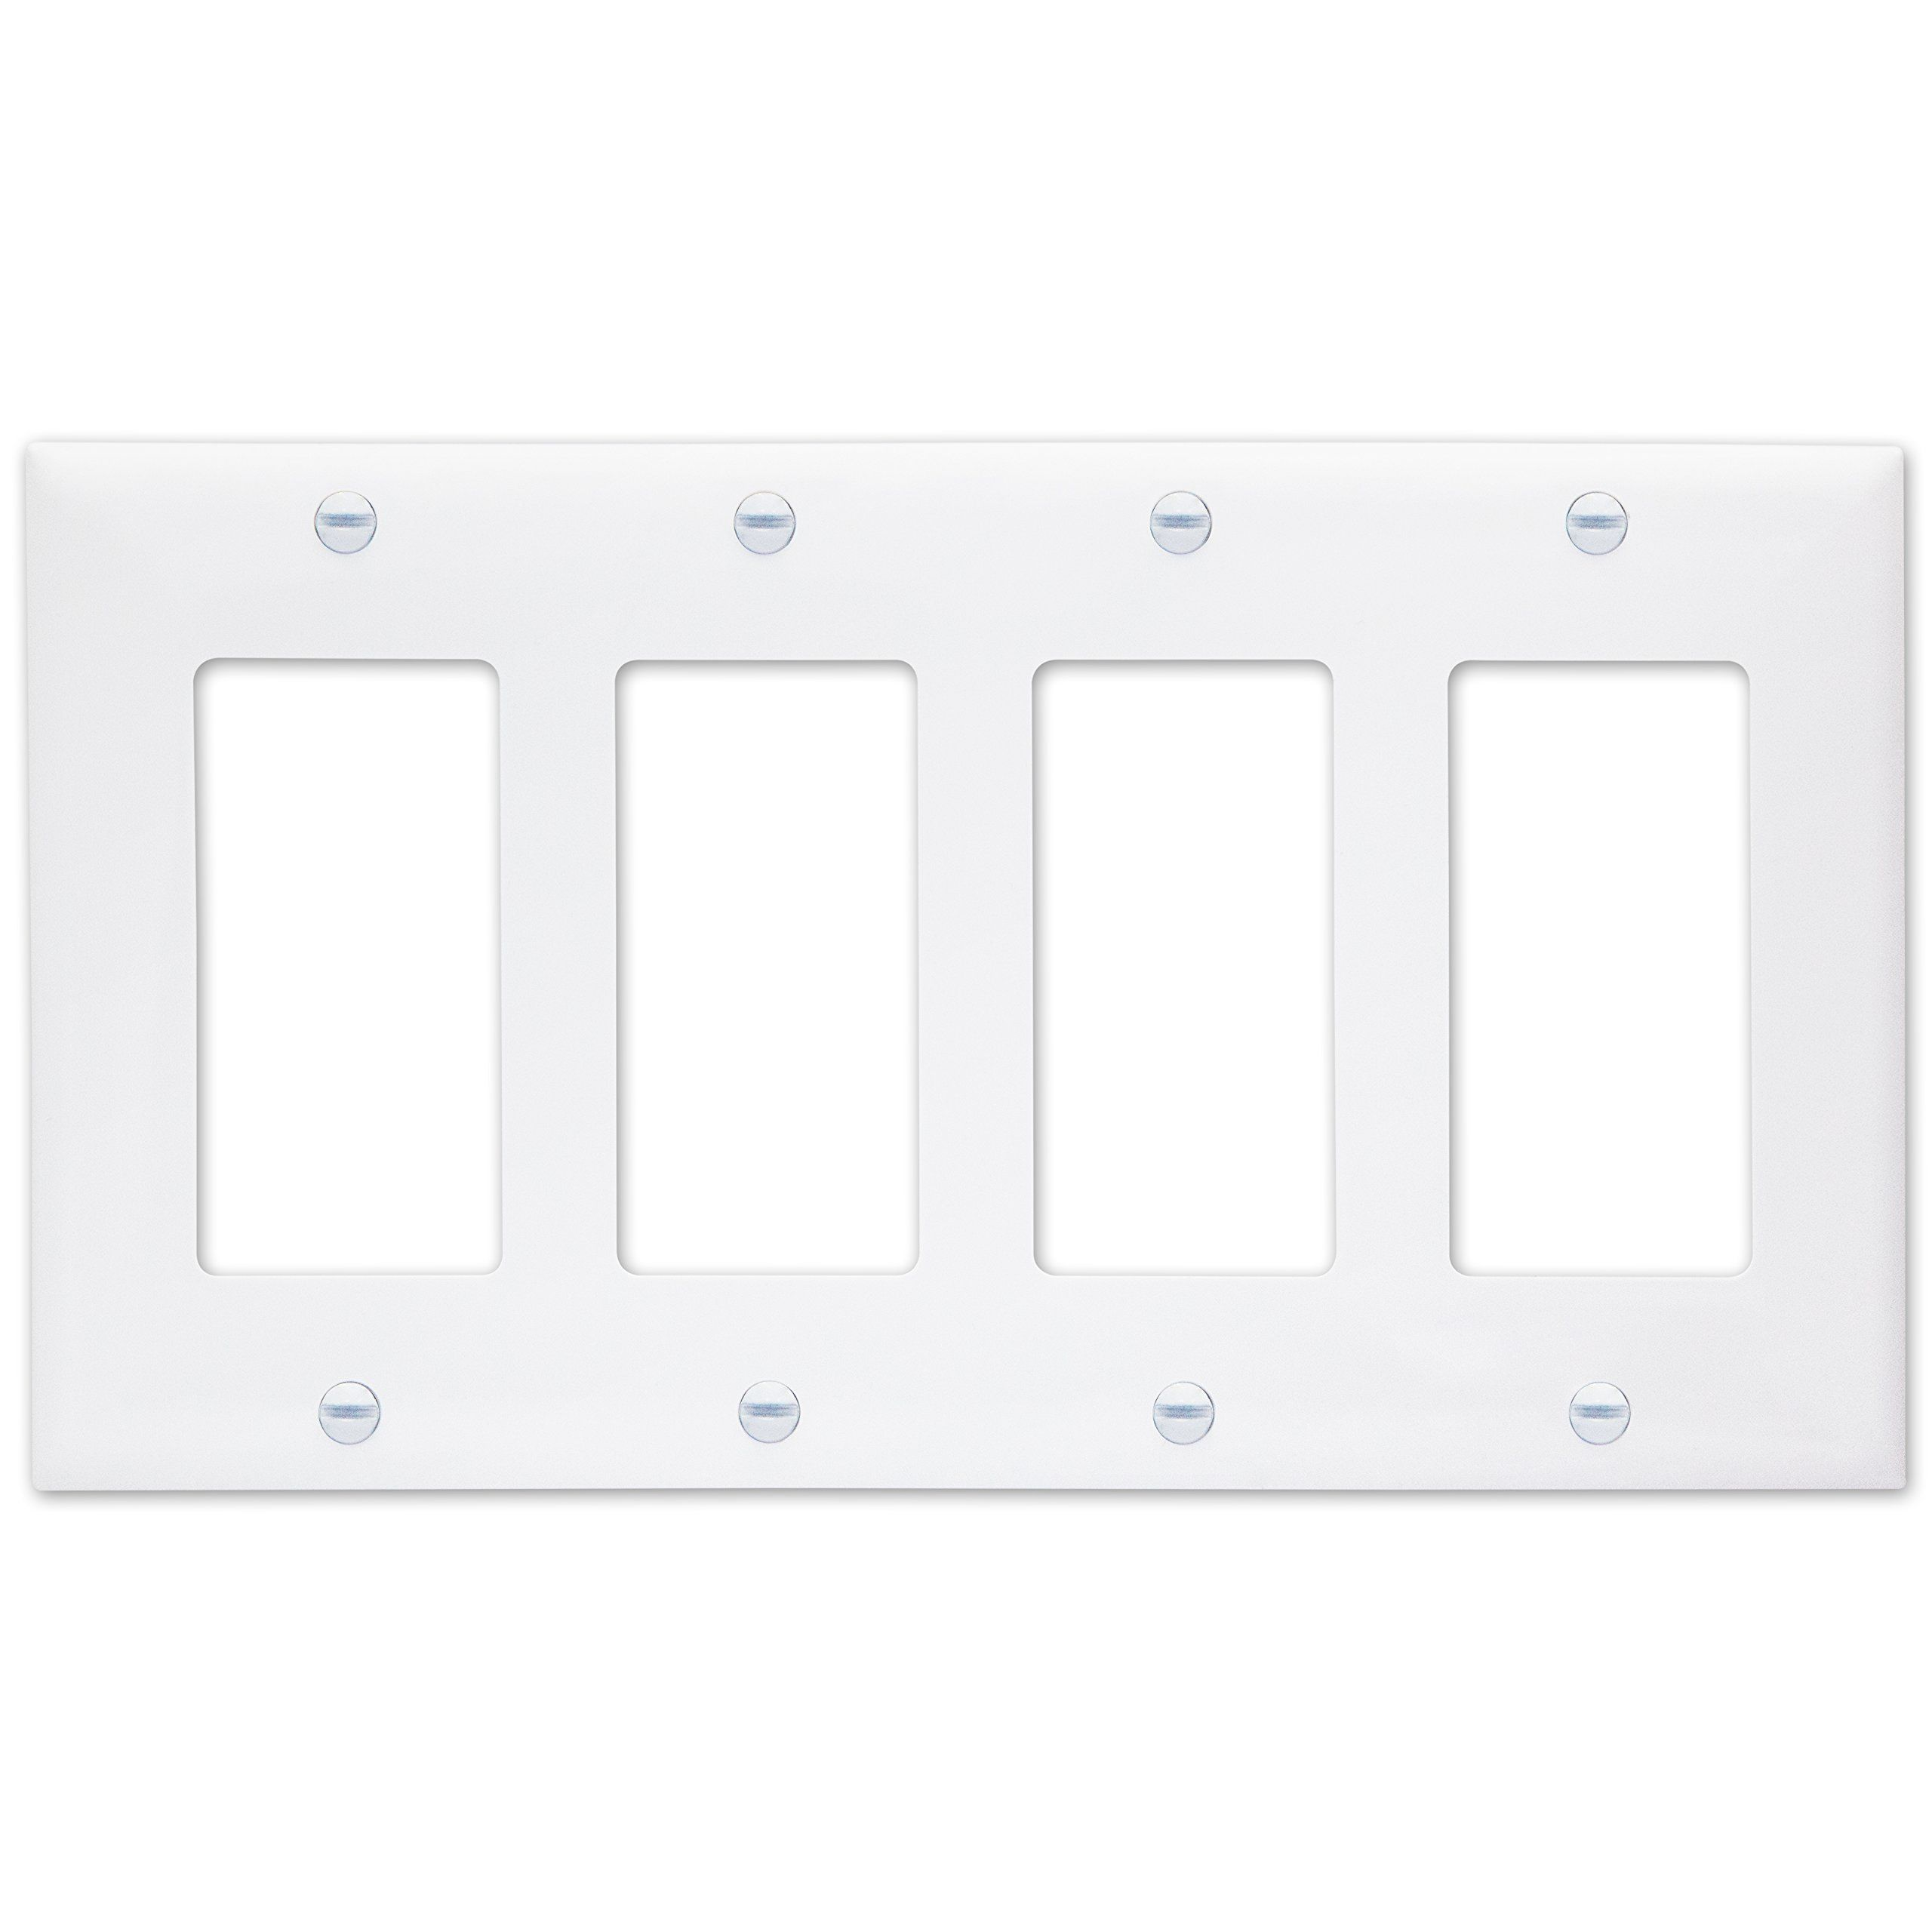 Enerlites Decorator Light Switch Or Receptacle Outlet Wall Plate Size 4 Gang 4 50 X 8 19 Polycarbonate Thermo Plates On Wall Light Switch Light Accessories